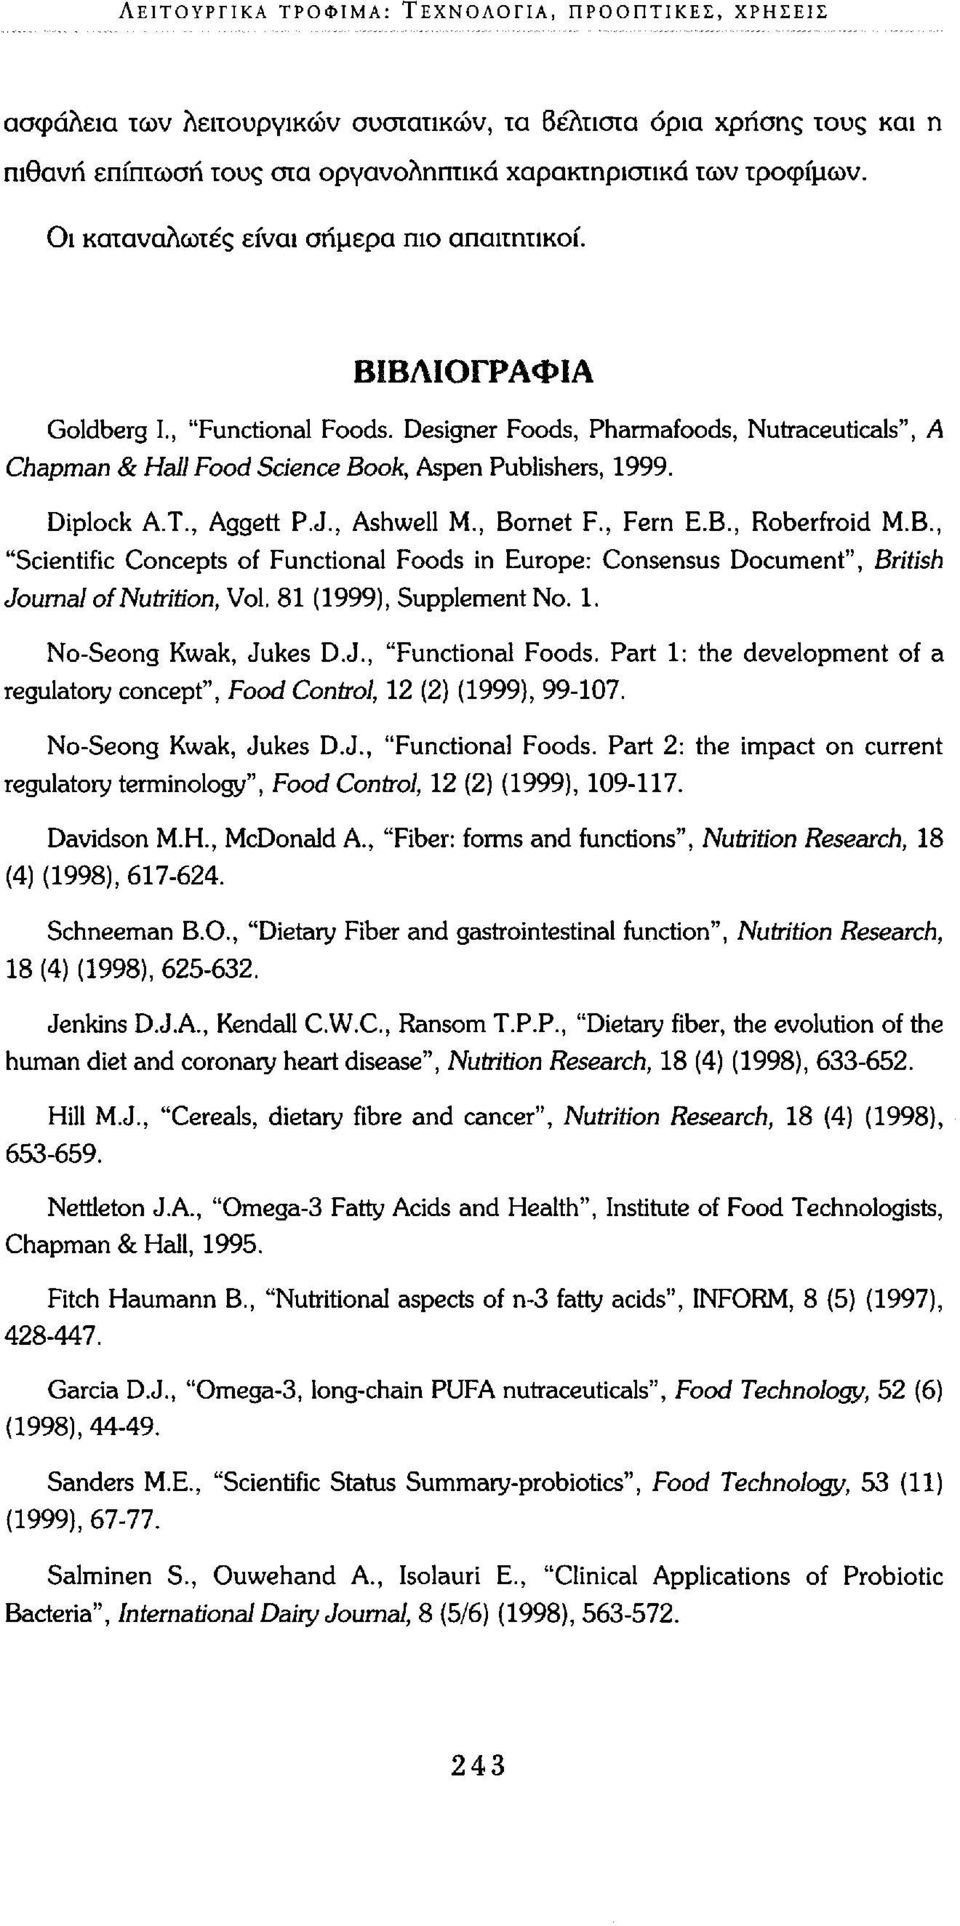 "Diplock A.T., Aggett P.J., Ashwell M., Bornet F., Fern E.B., Roberfroid M.B., ""Scientific Concepts of Functional Foods in Europe: Consensus Document"", British Journal of Nutrition, Vol."